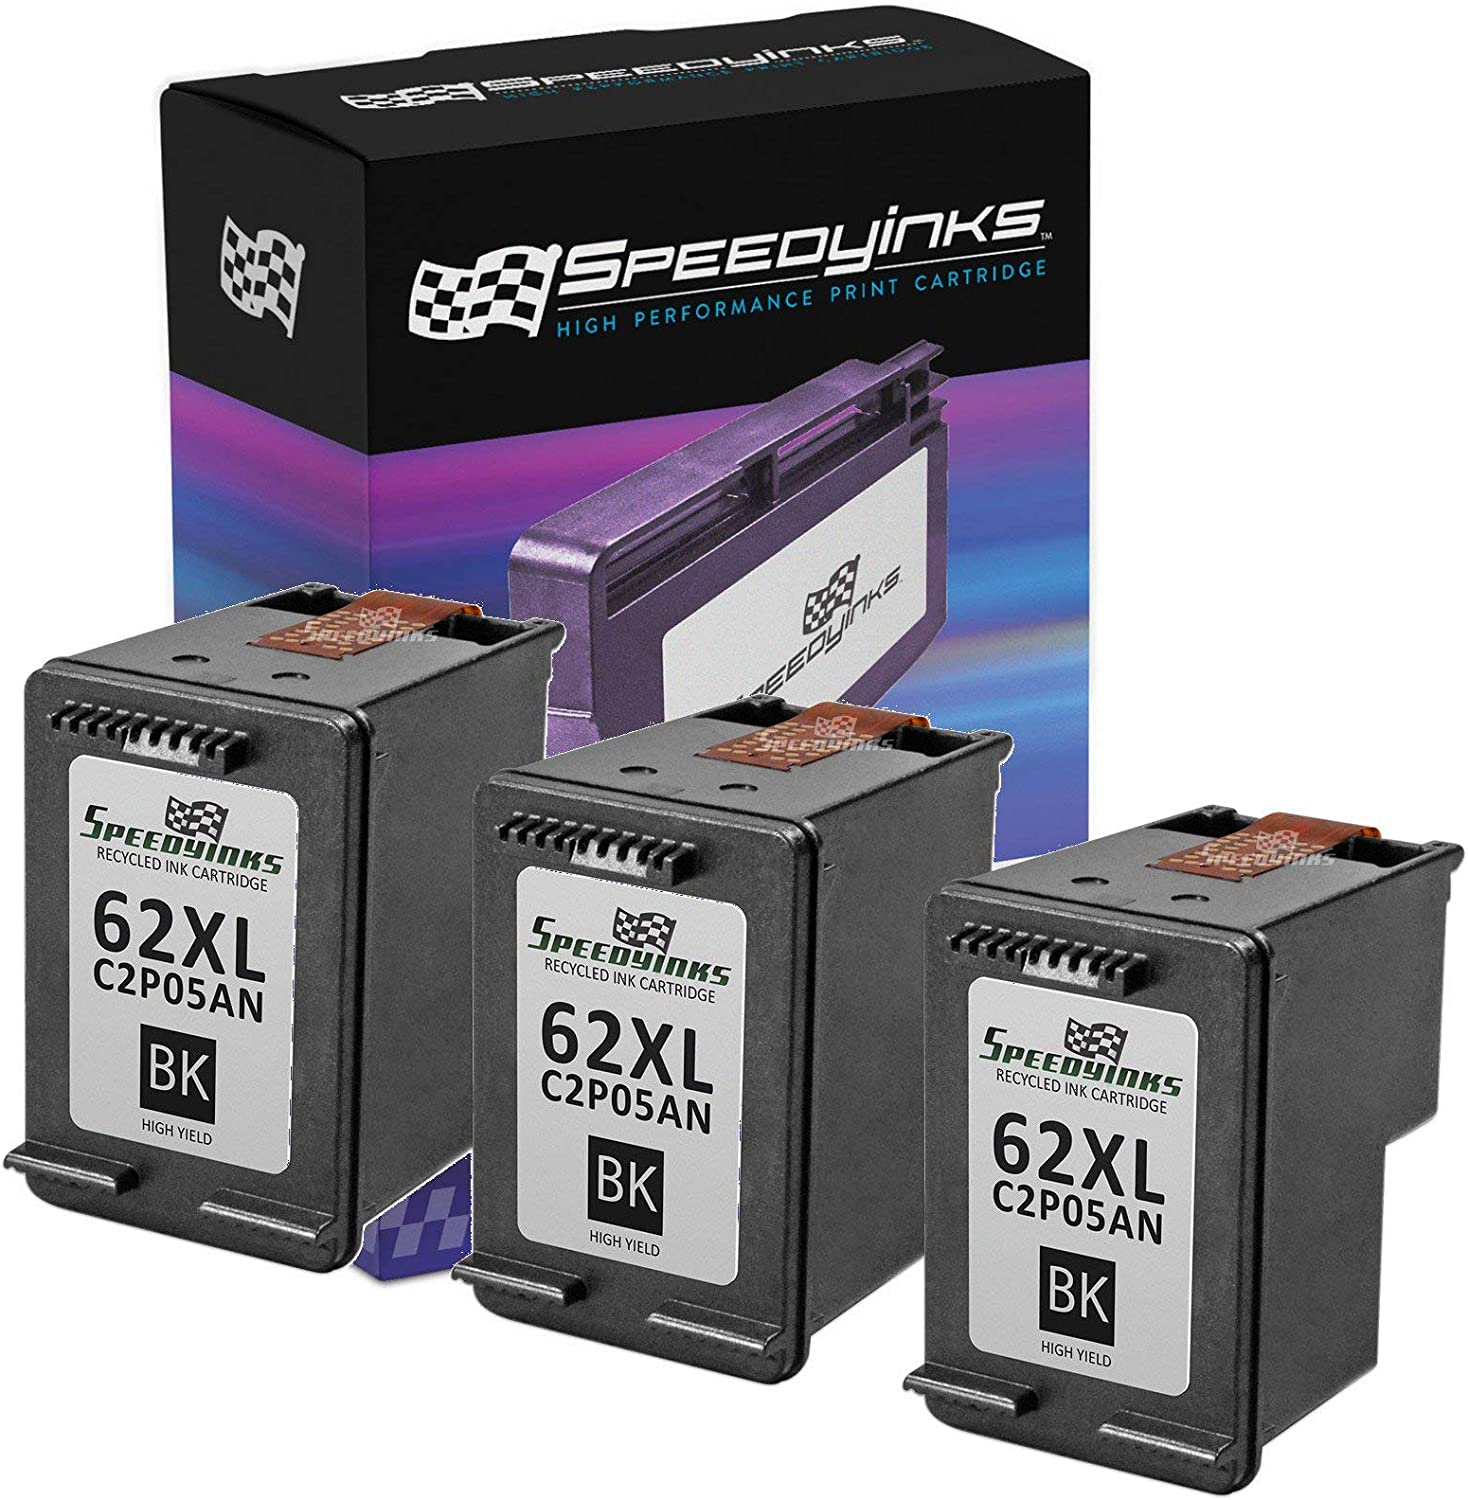 Speedy Inks Remanufactured Ink Cartridge Replacement for HP 62XL C2P05AN High Yield (Black, 3-Pack)